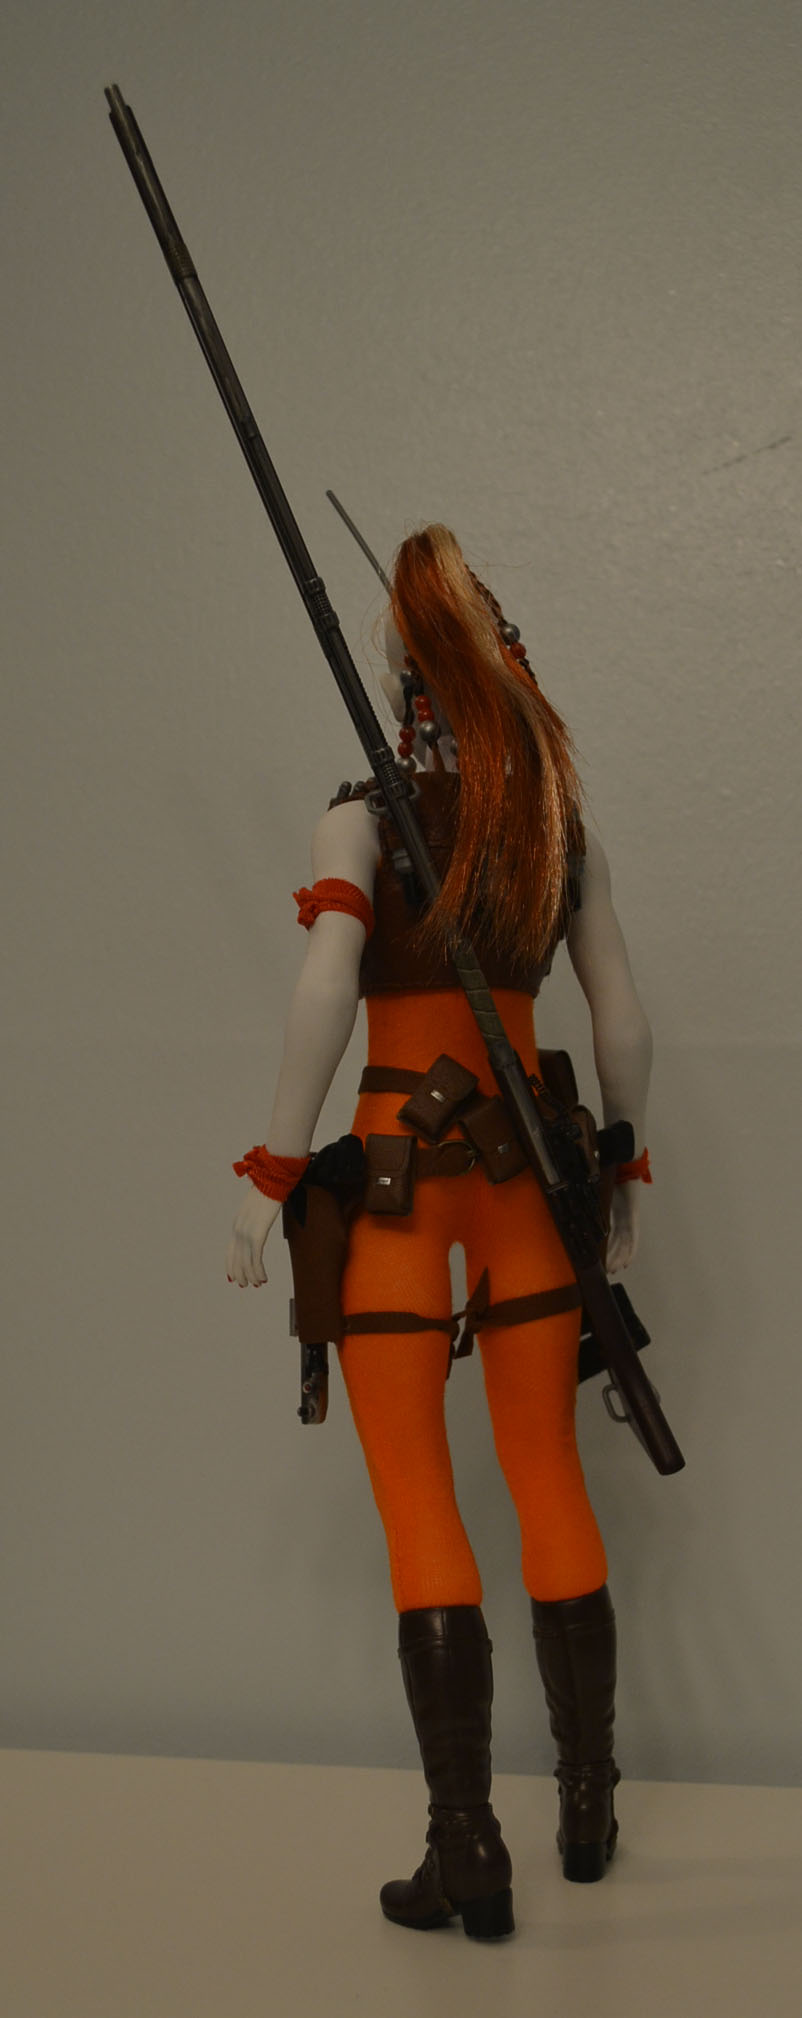 bountyhunter - Custom/Kitbash: Aurra Sing - Star Wars Bounty Hunter (Episode I) _dsc3127